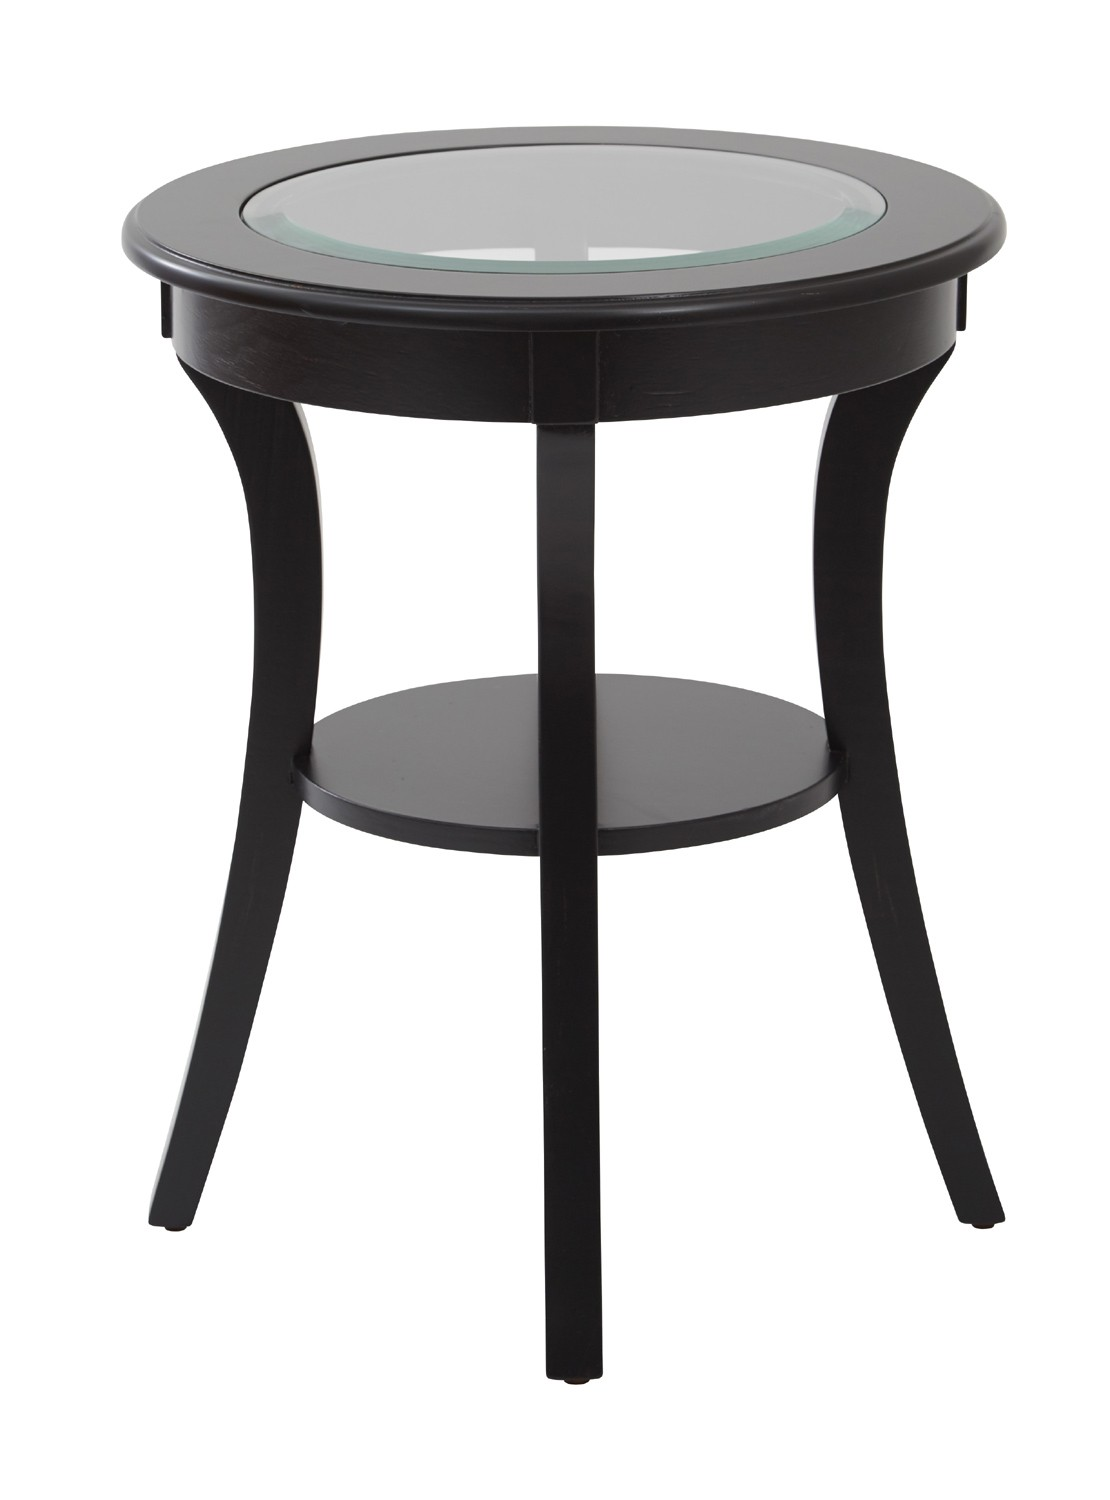 amazing black round accent table with metal outdoor side stylish office star harper glass top brushed tures gallery cnxconsortium unusual lamps square patio set cover drawer